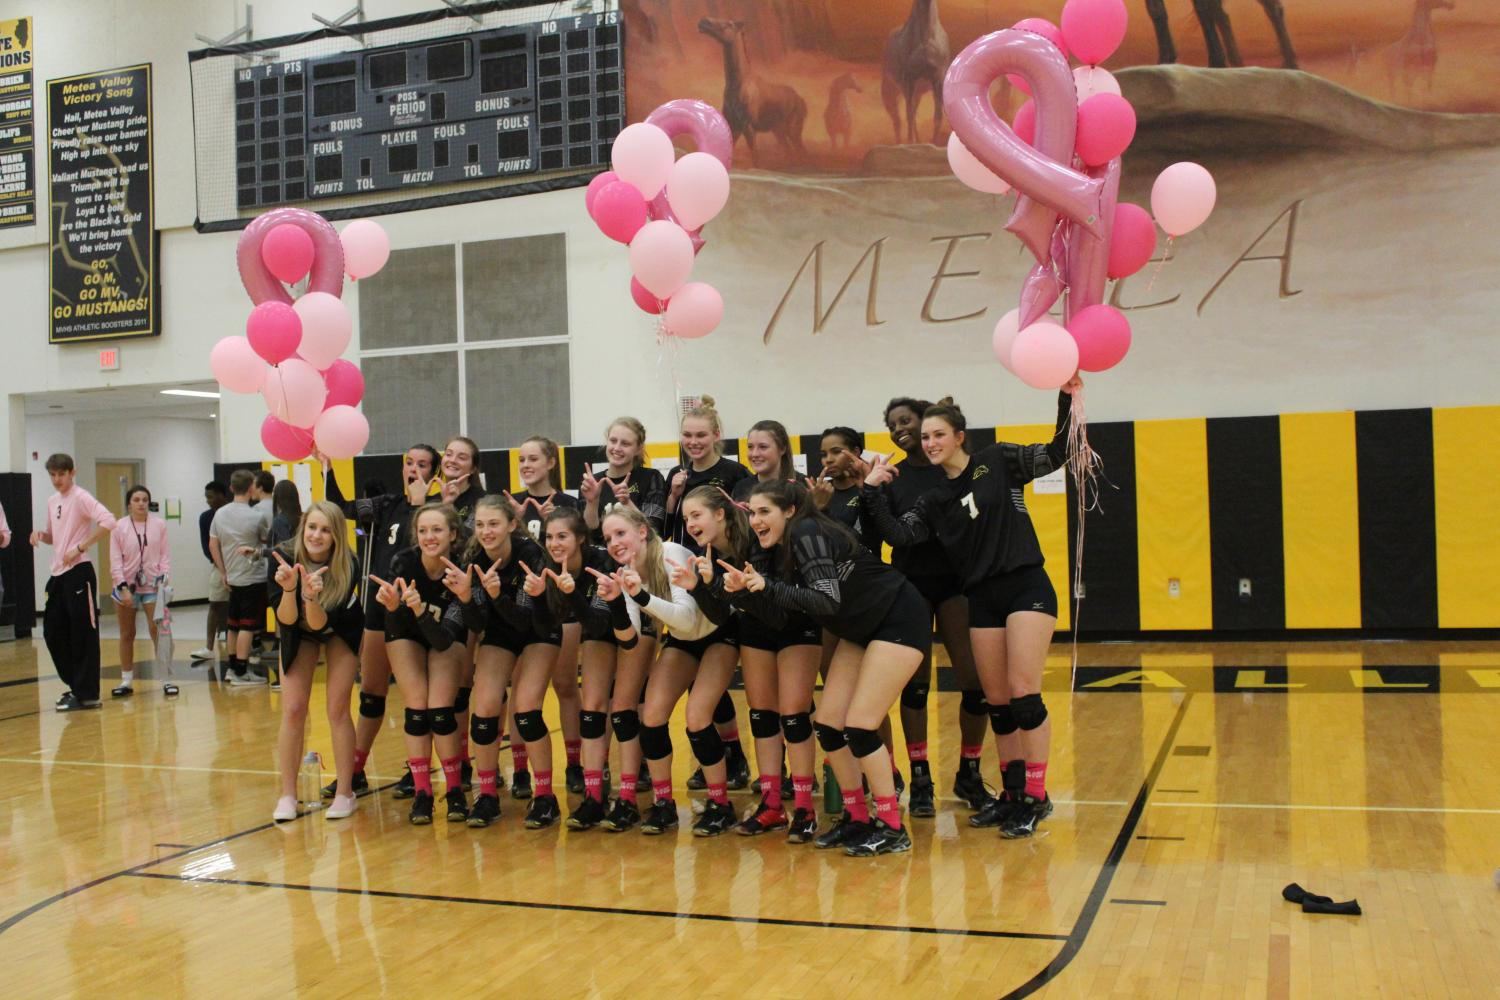 Girls Volleyball plays in honor of breast cancer